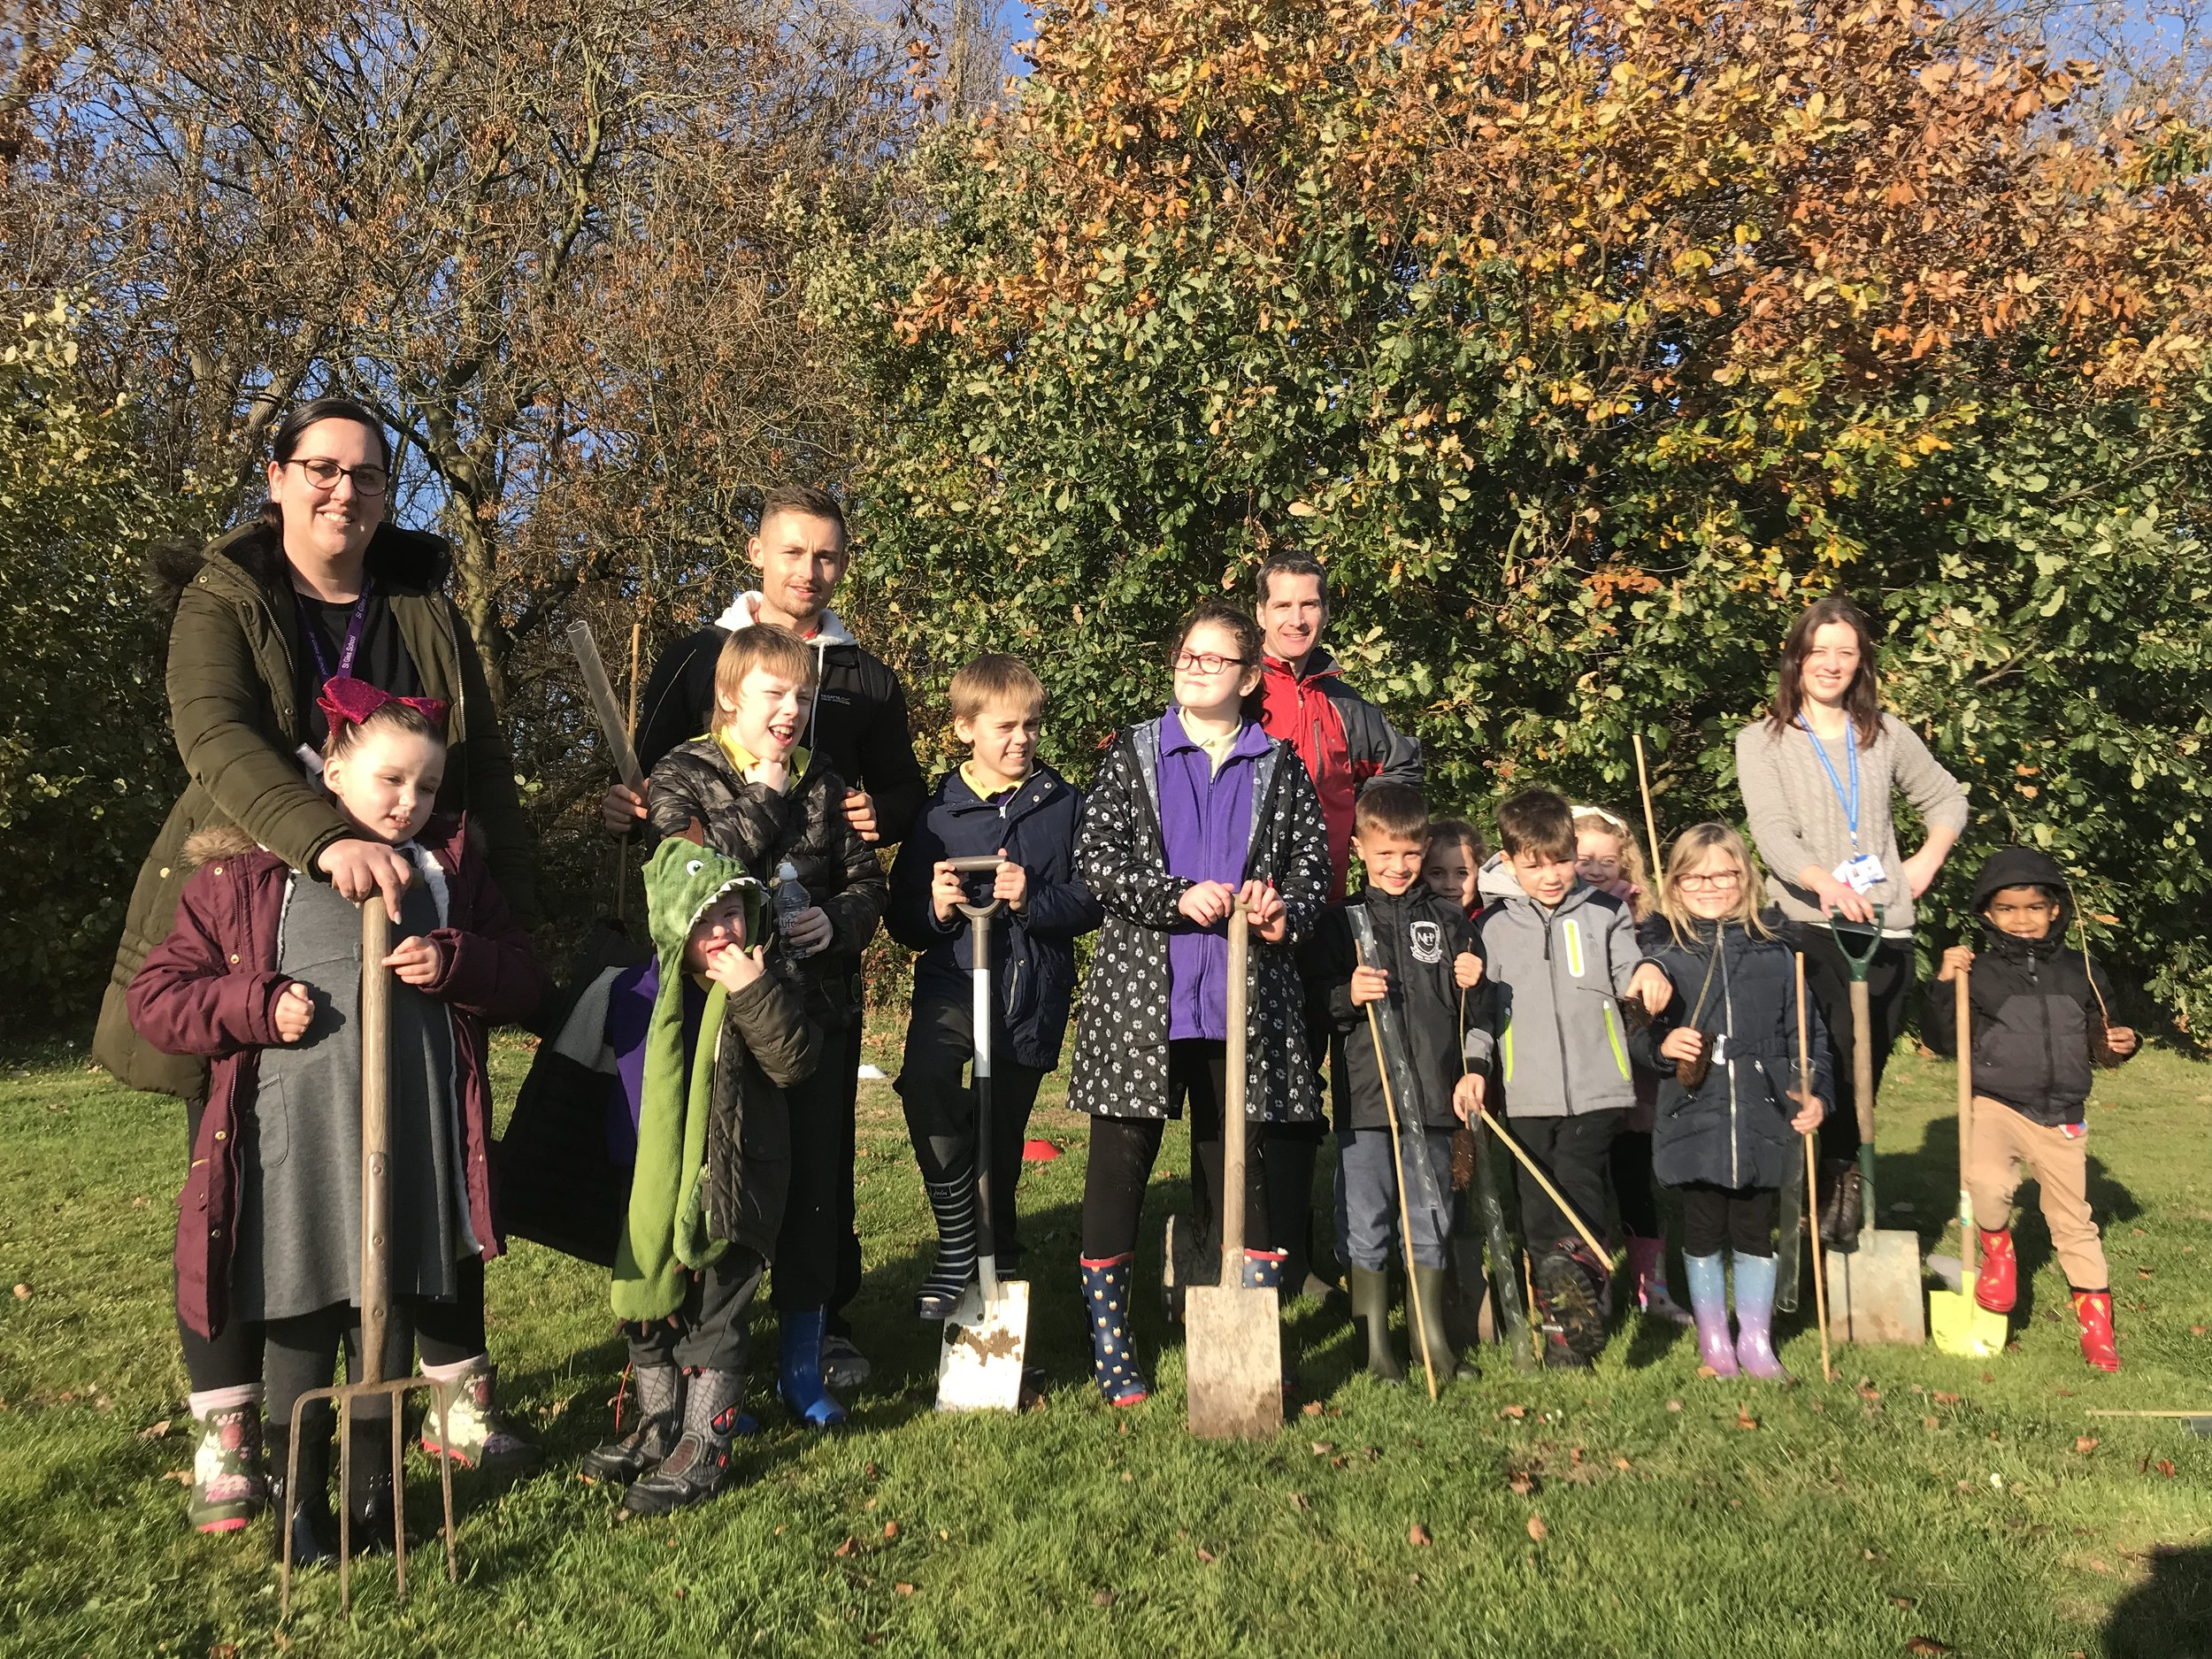 Staff and pupils from St Giles School and Carlyle Infant and Nursery teamed up to plant trees donated by the Woodland Trust. Penguin PR: public relations, media and communication